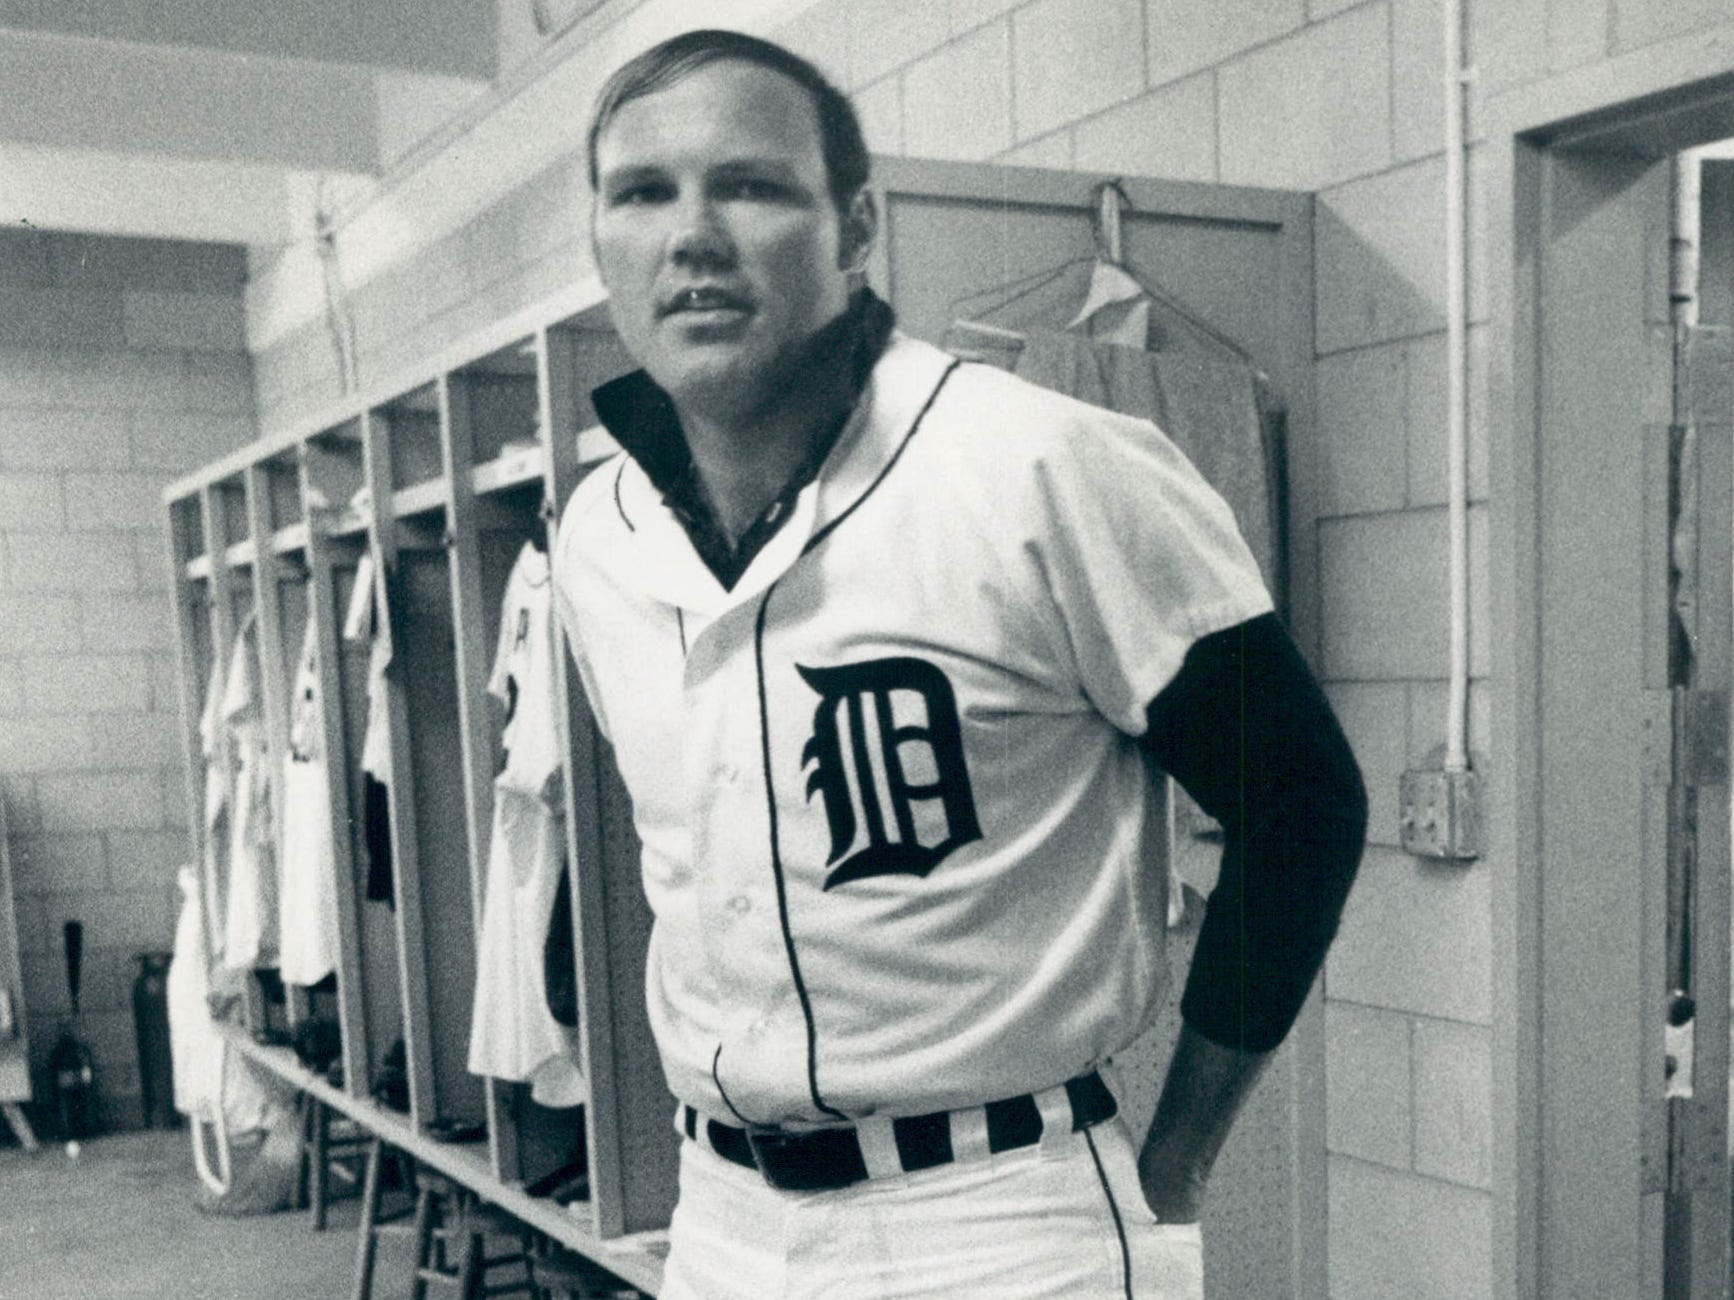 Tigers catcher Bill Freehan in the clubhouse in Lakeland, Fla., on Feb. 19, 1971.